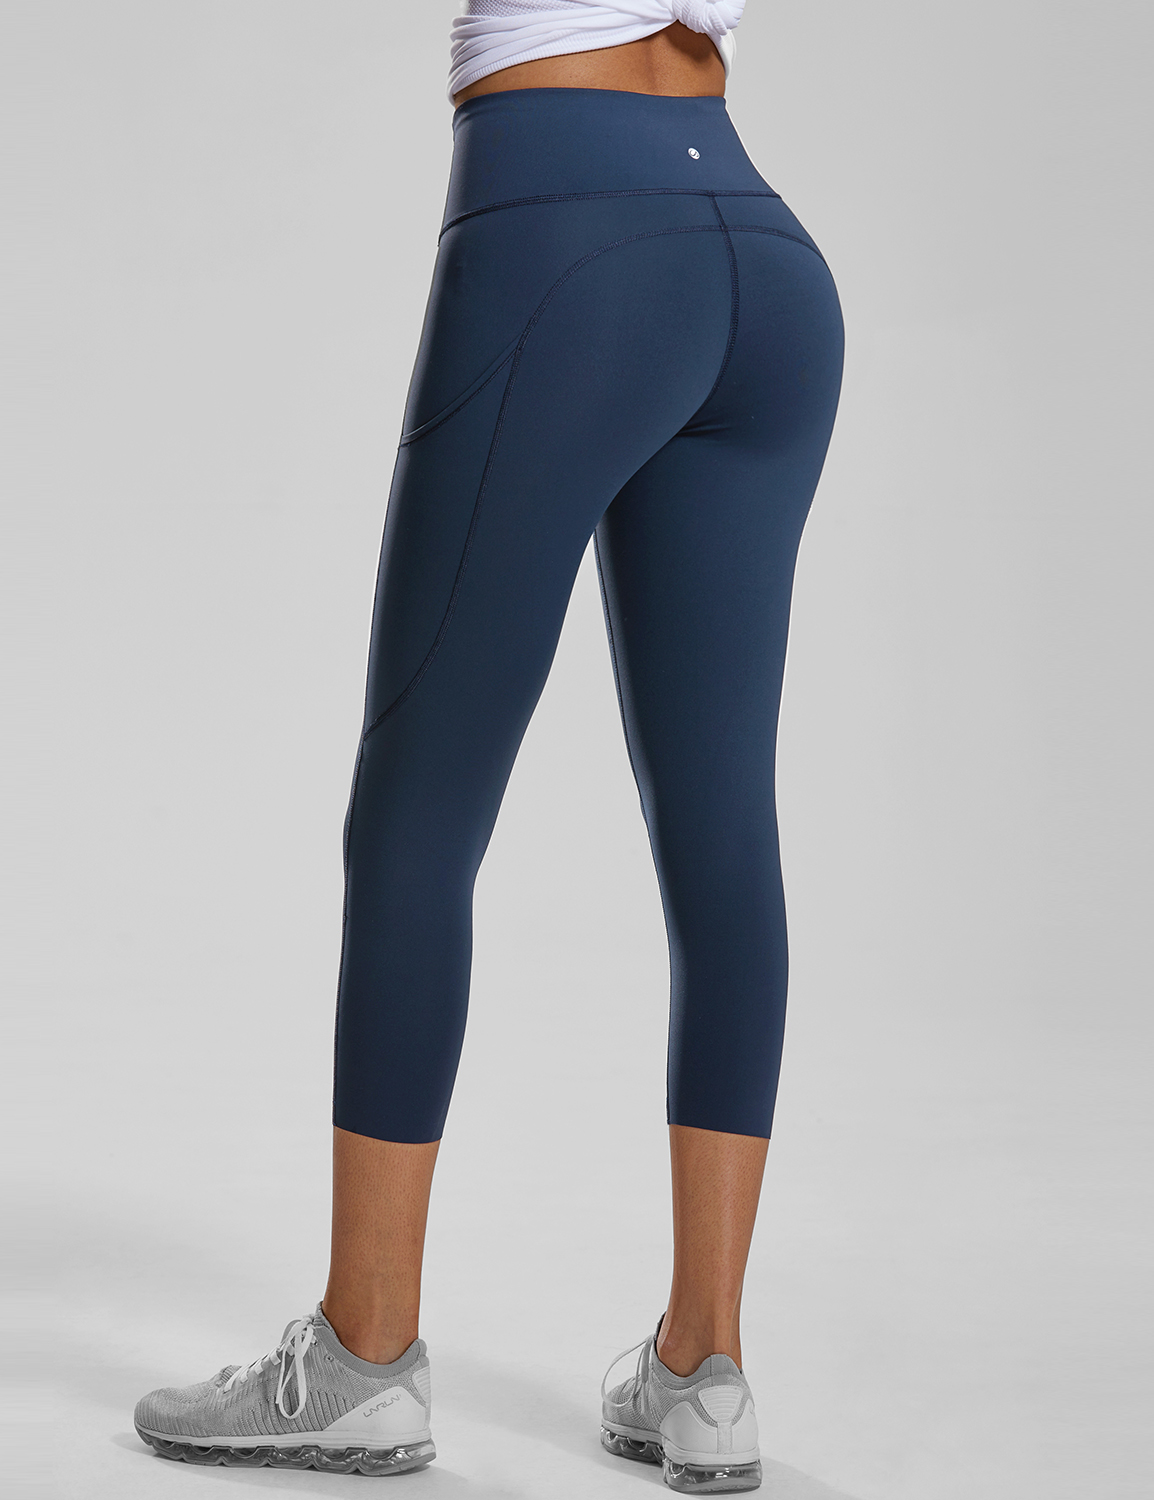 Women S High Waist Capri Sports Leggings With Side Pockets